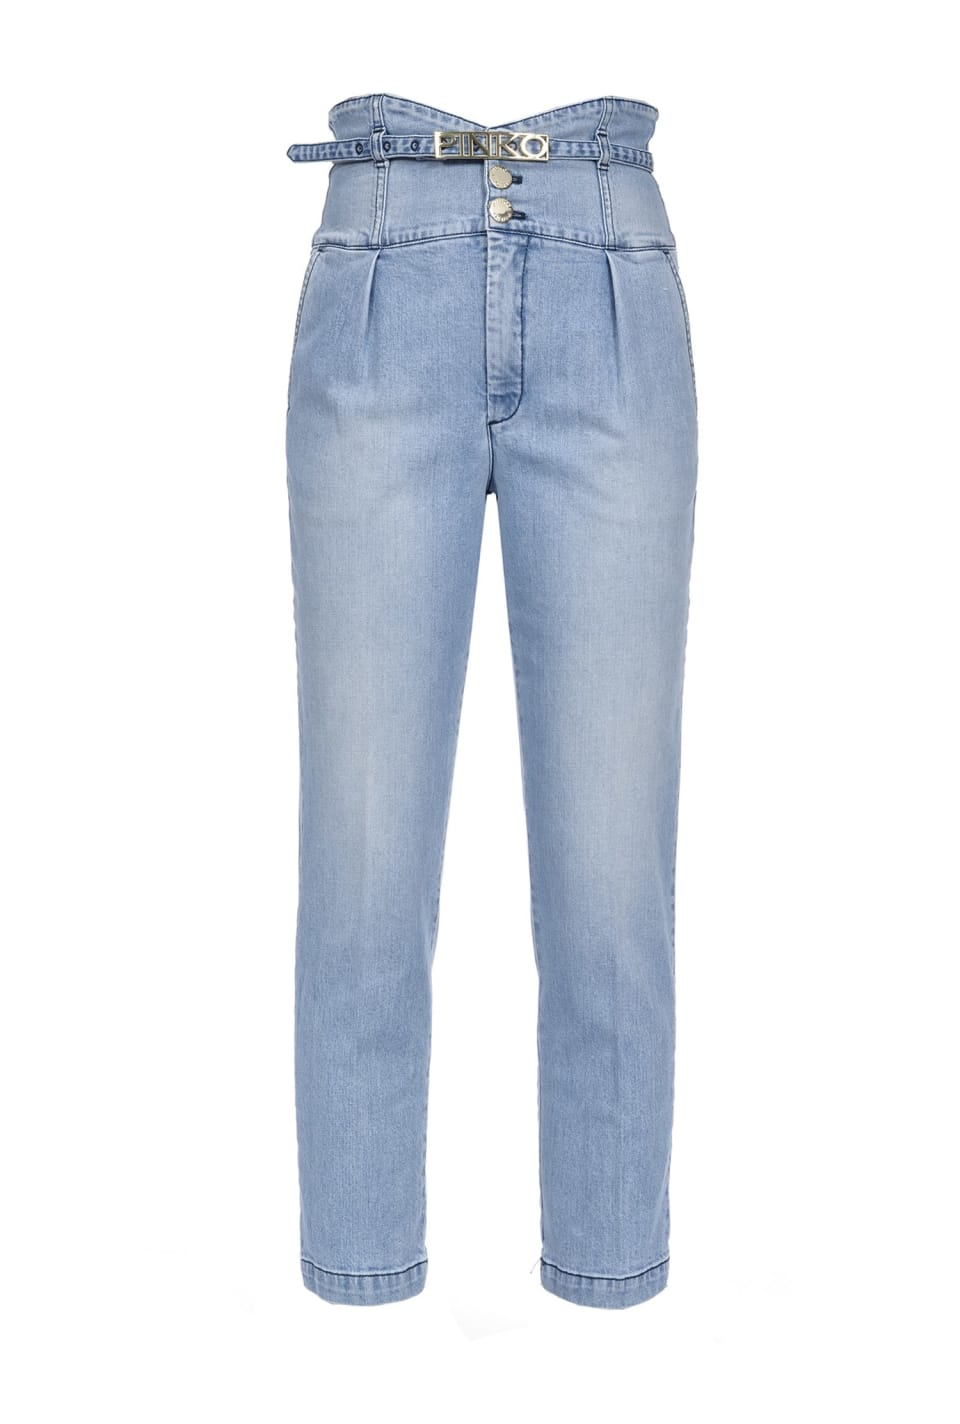 Chino-Jeans mit hoher Taille in Miederoptik